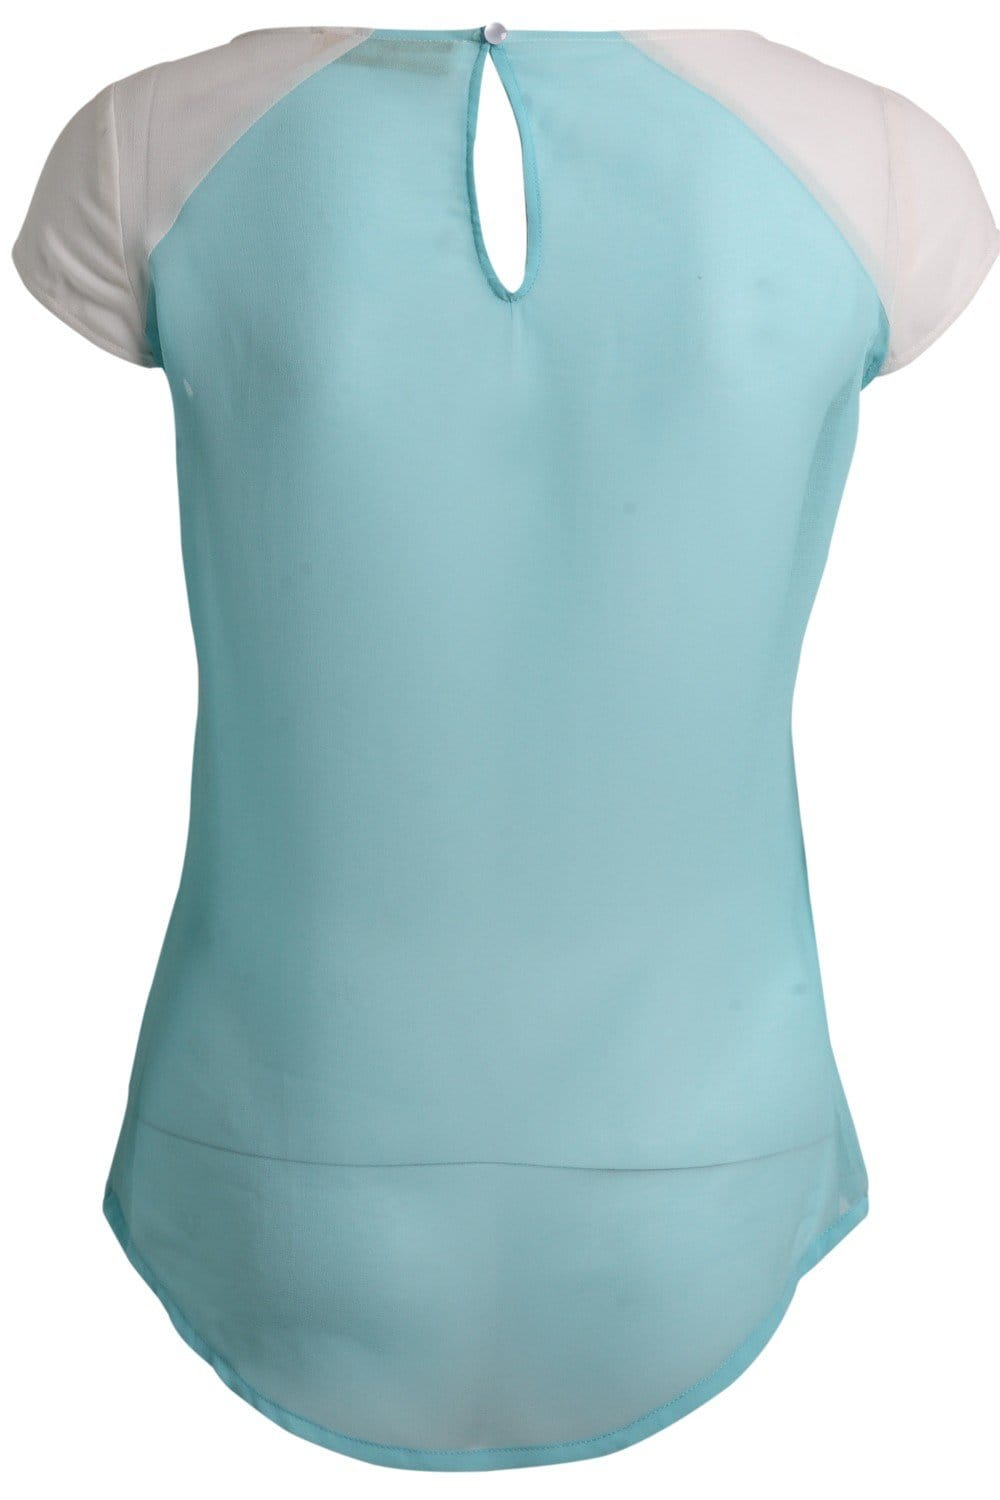 Little Mistress Turquoise Embroidery Anglaise Top